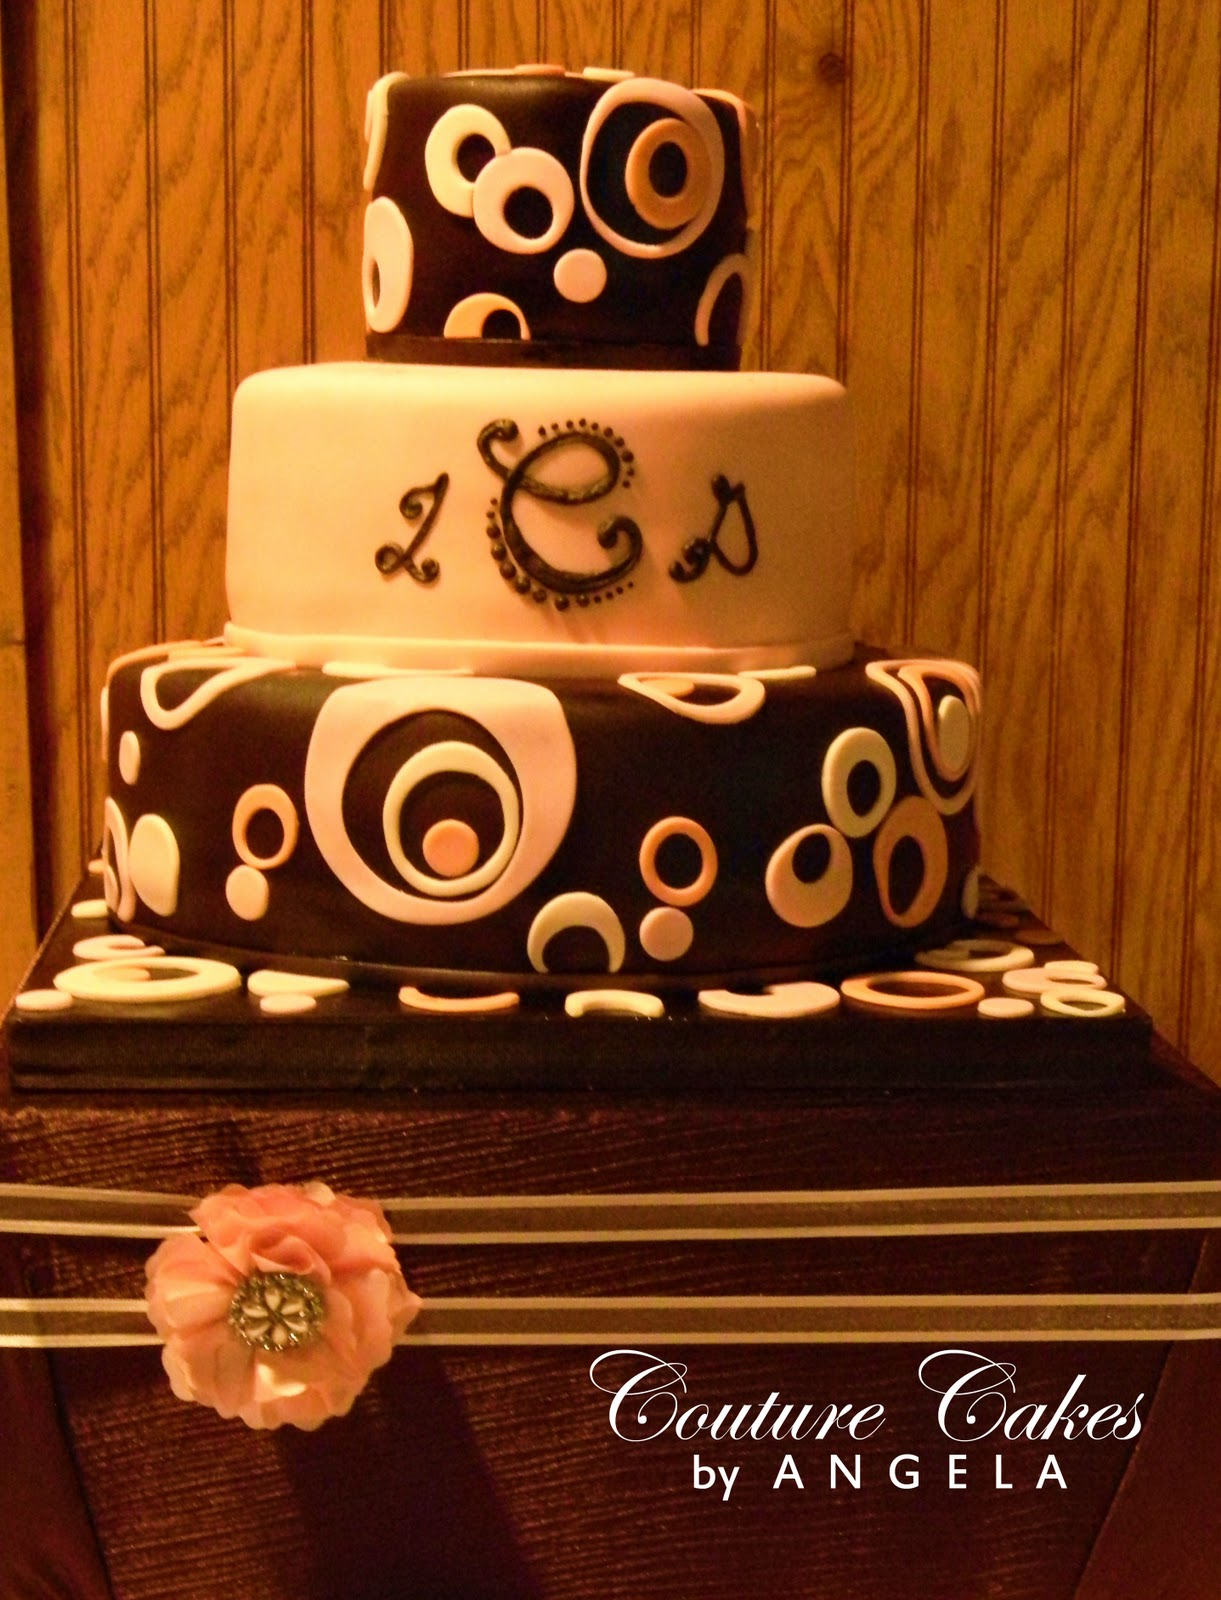 Couture Cakes by Angela March 2011